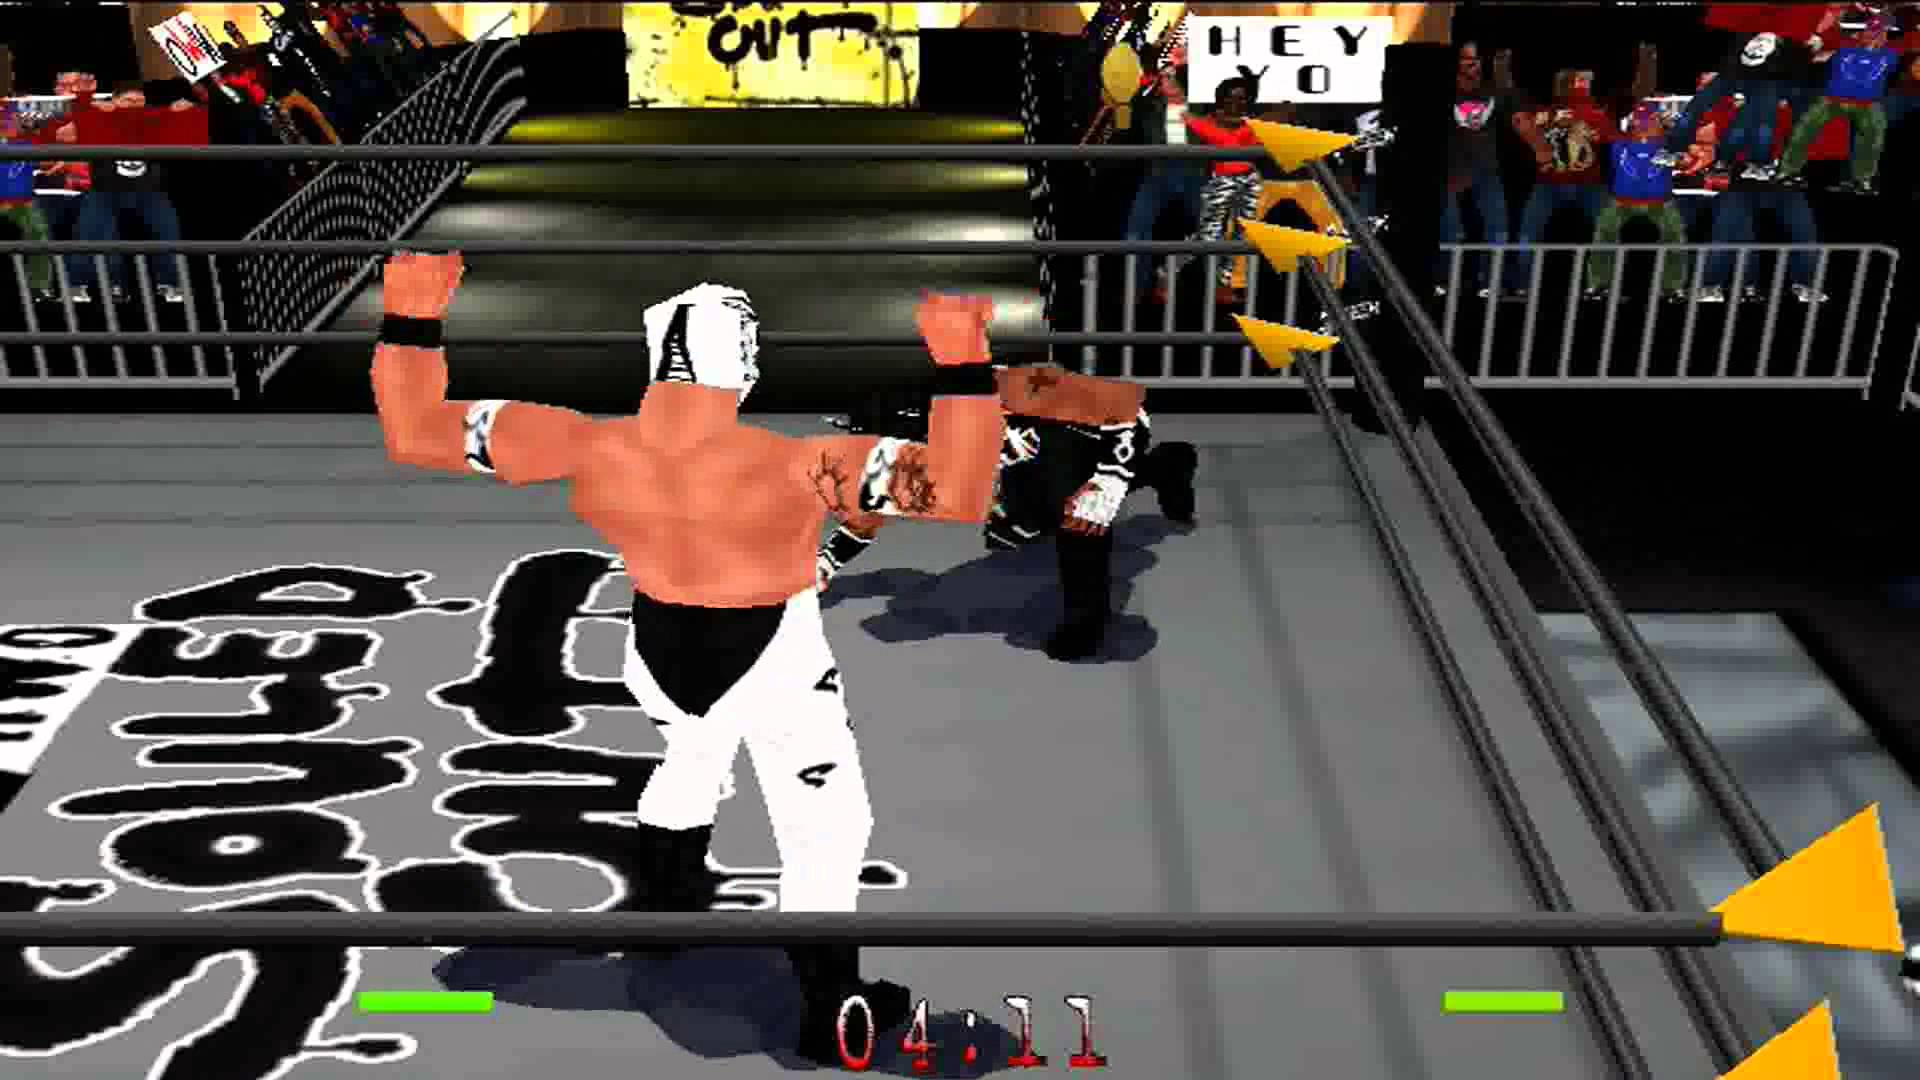 30 best wrestling games ranked: WWE and WCW battle it out in the